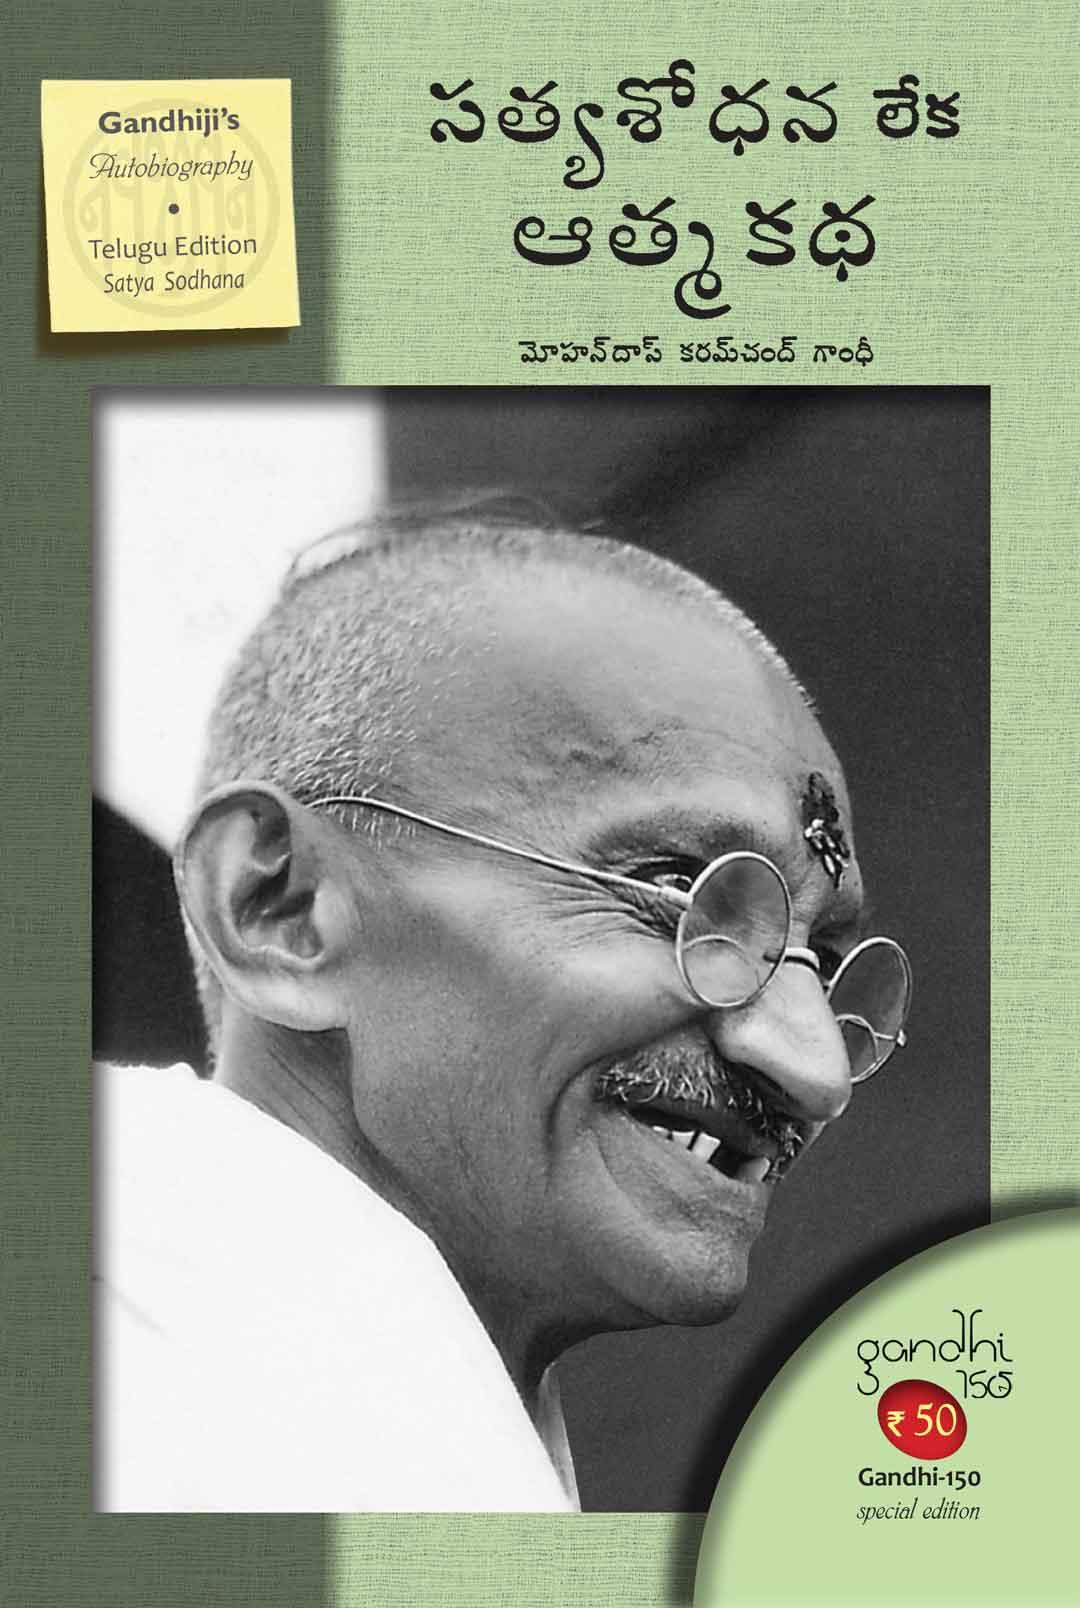 mahatma gandhi autobiography in malayalam Biography of mahatma gandhi in malayalam language mahatma gandhi  the book had an english translation earlier sep 27, , autobiography of mahatma gandhi, m k gandhi the original was in gujarati, and was later translated into english and other indian languages the book is in  gandhi was born on october 2, , at porbandar.